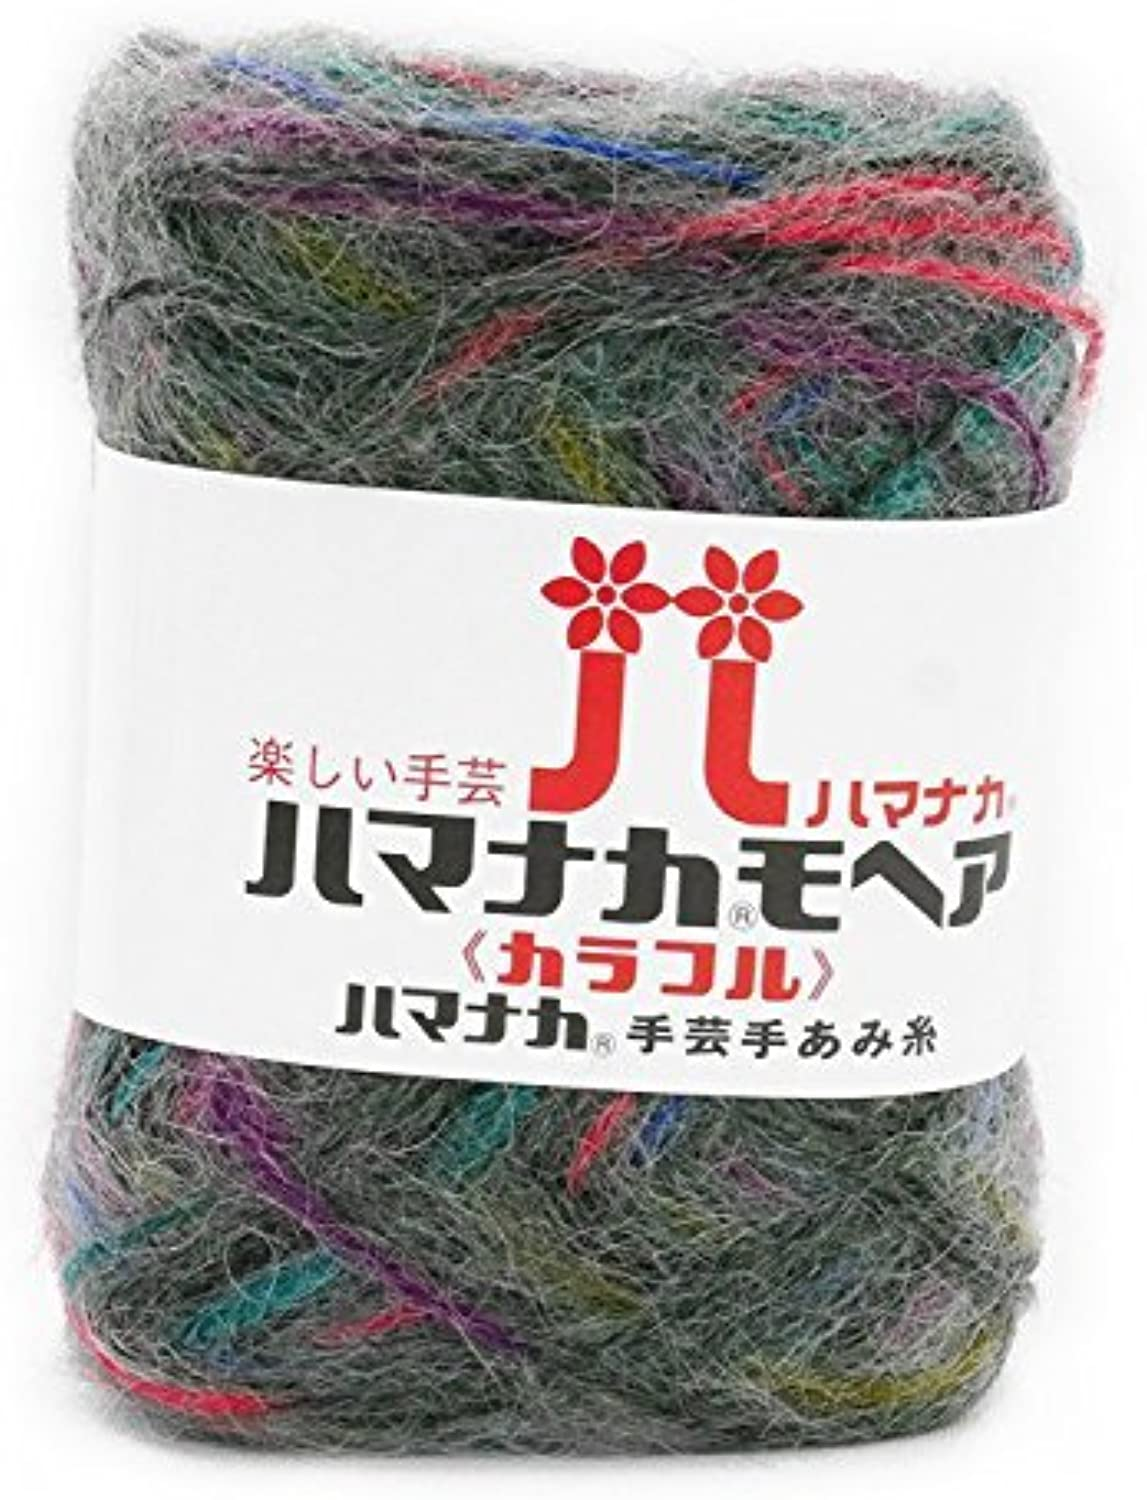 Mohair colorful wool stringer green series 25 g 100 m 10 pieces set